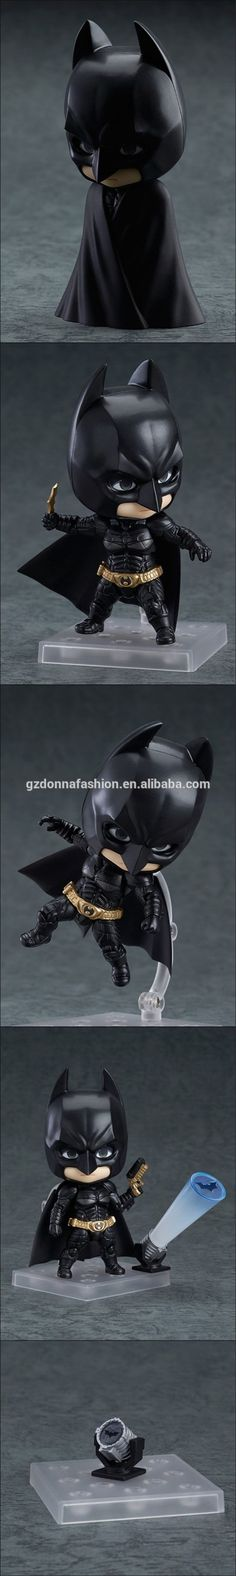 10CM Nendoroid The Dark Knight Rises Batman #469 Action Figures Toys Anime Figure, View Anime Figure, donnatoyfirm Product Details from Guangzhou Donna Fashion Accessory Co., Ltd. on Alibaba.com